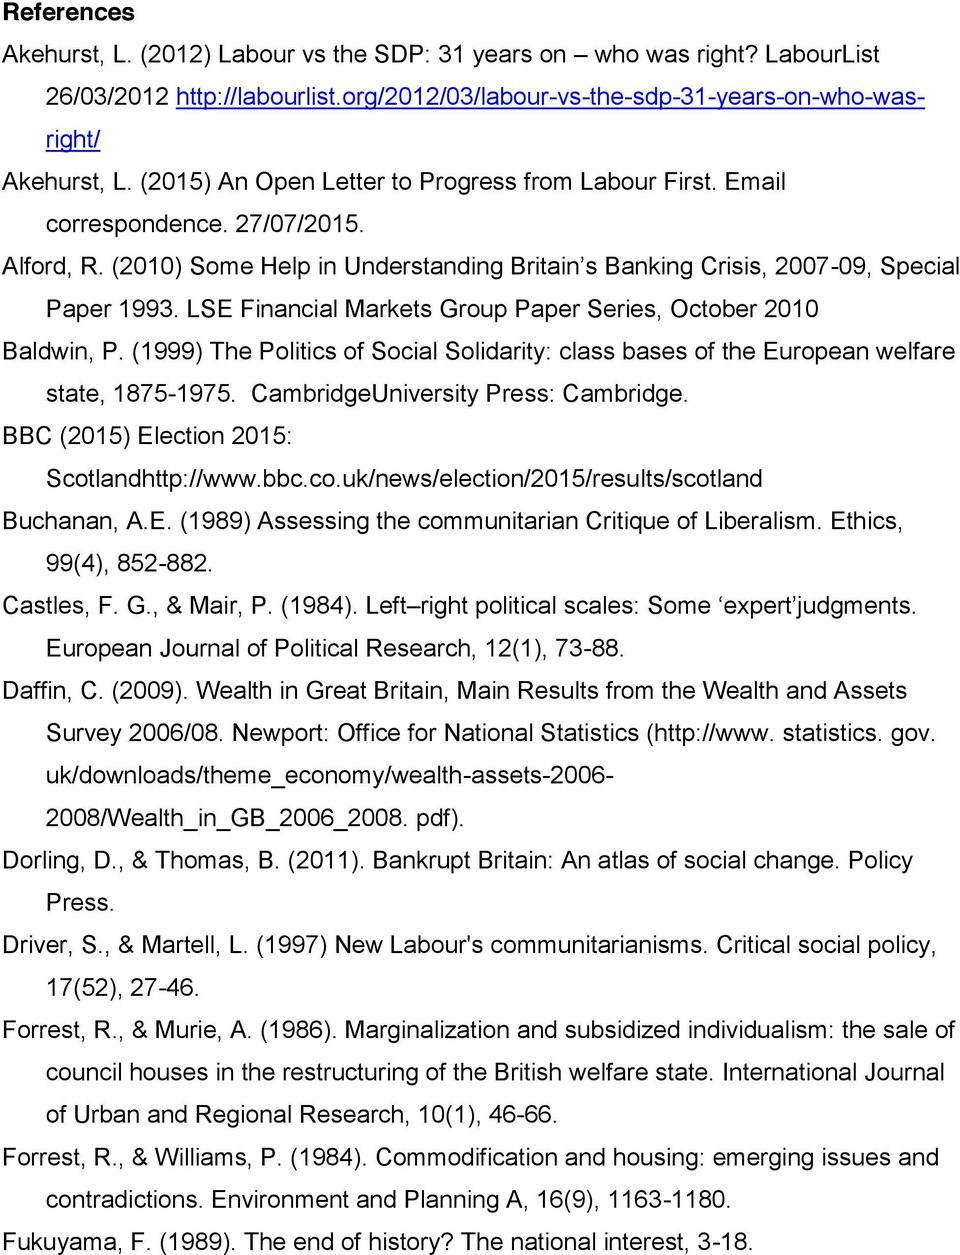 LSE Financial Markets Group Paper Series, October 2010 Baldwin, P. (1999) The Politics of Social Solidarity: class bases of the European welfare state, 1875-1975. CambridgeUniversity Press: Cambridge.